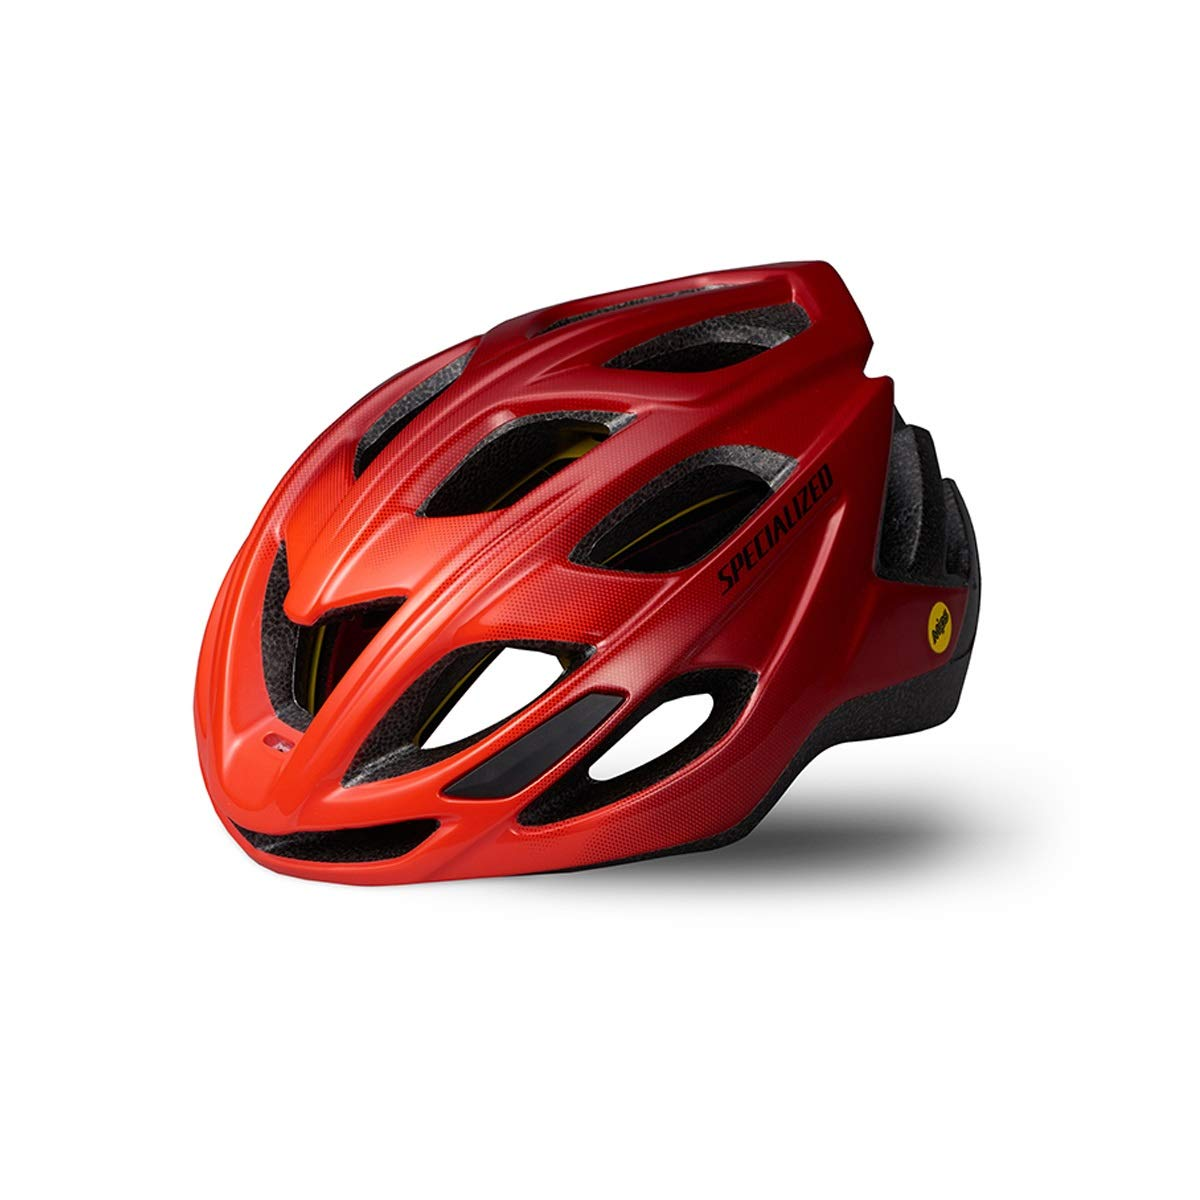 Huijunwenti Casual commuter cycling helmet,Bike Helmet With In-Molded Reinforcing Skeleton For Added Protection - Adult Size, Comfortable, Lightweight, Breathable Size can be adjusted, the latest styl